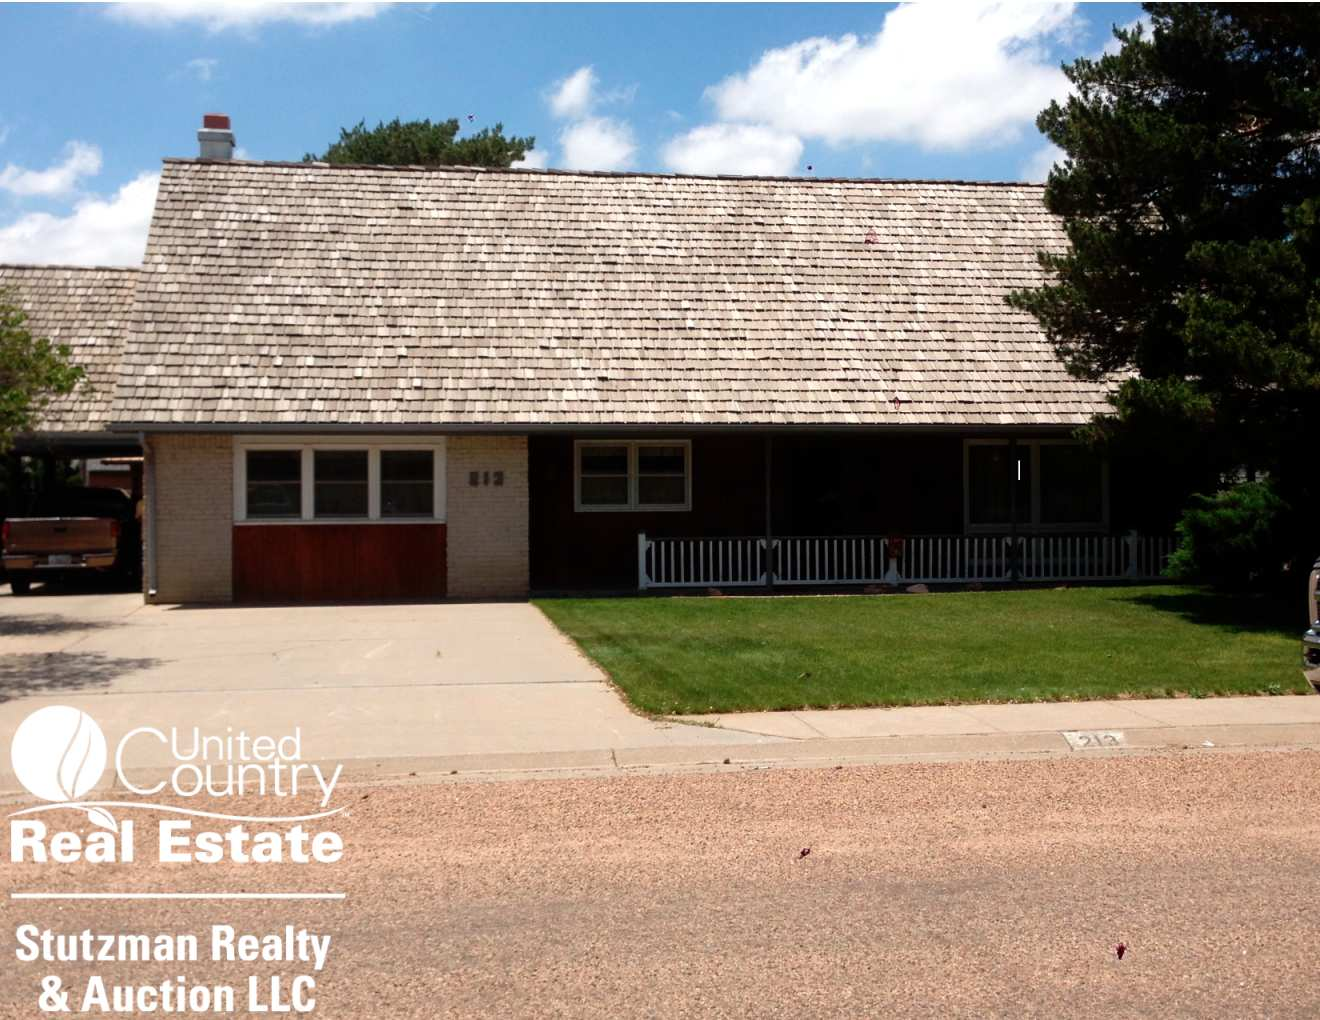 EXCLUSIVE ONE OF A KIND BRICK HOME FOR SALE IN SOUTHWEST KS